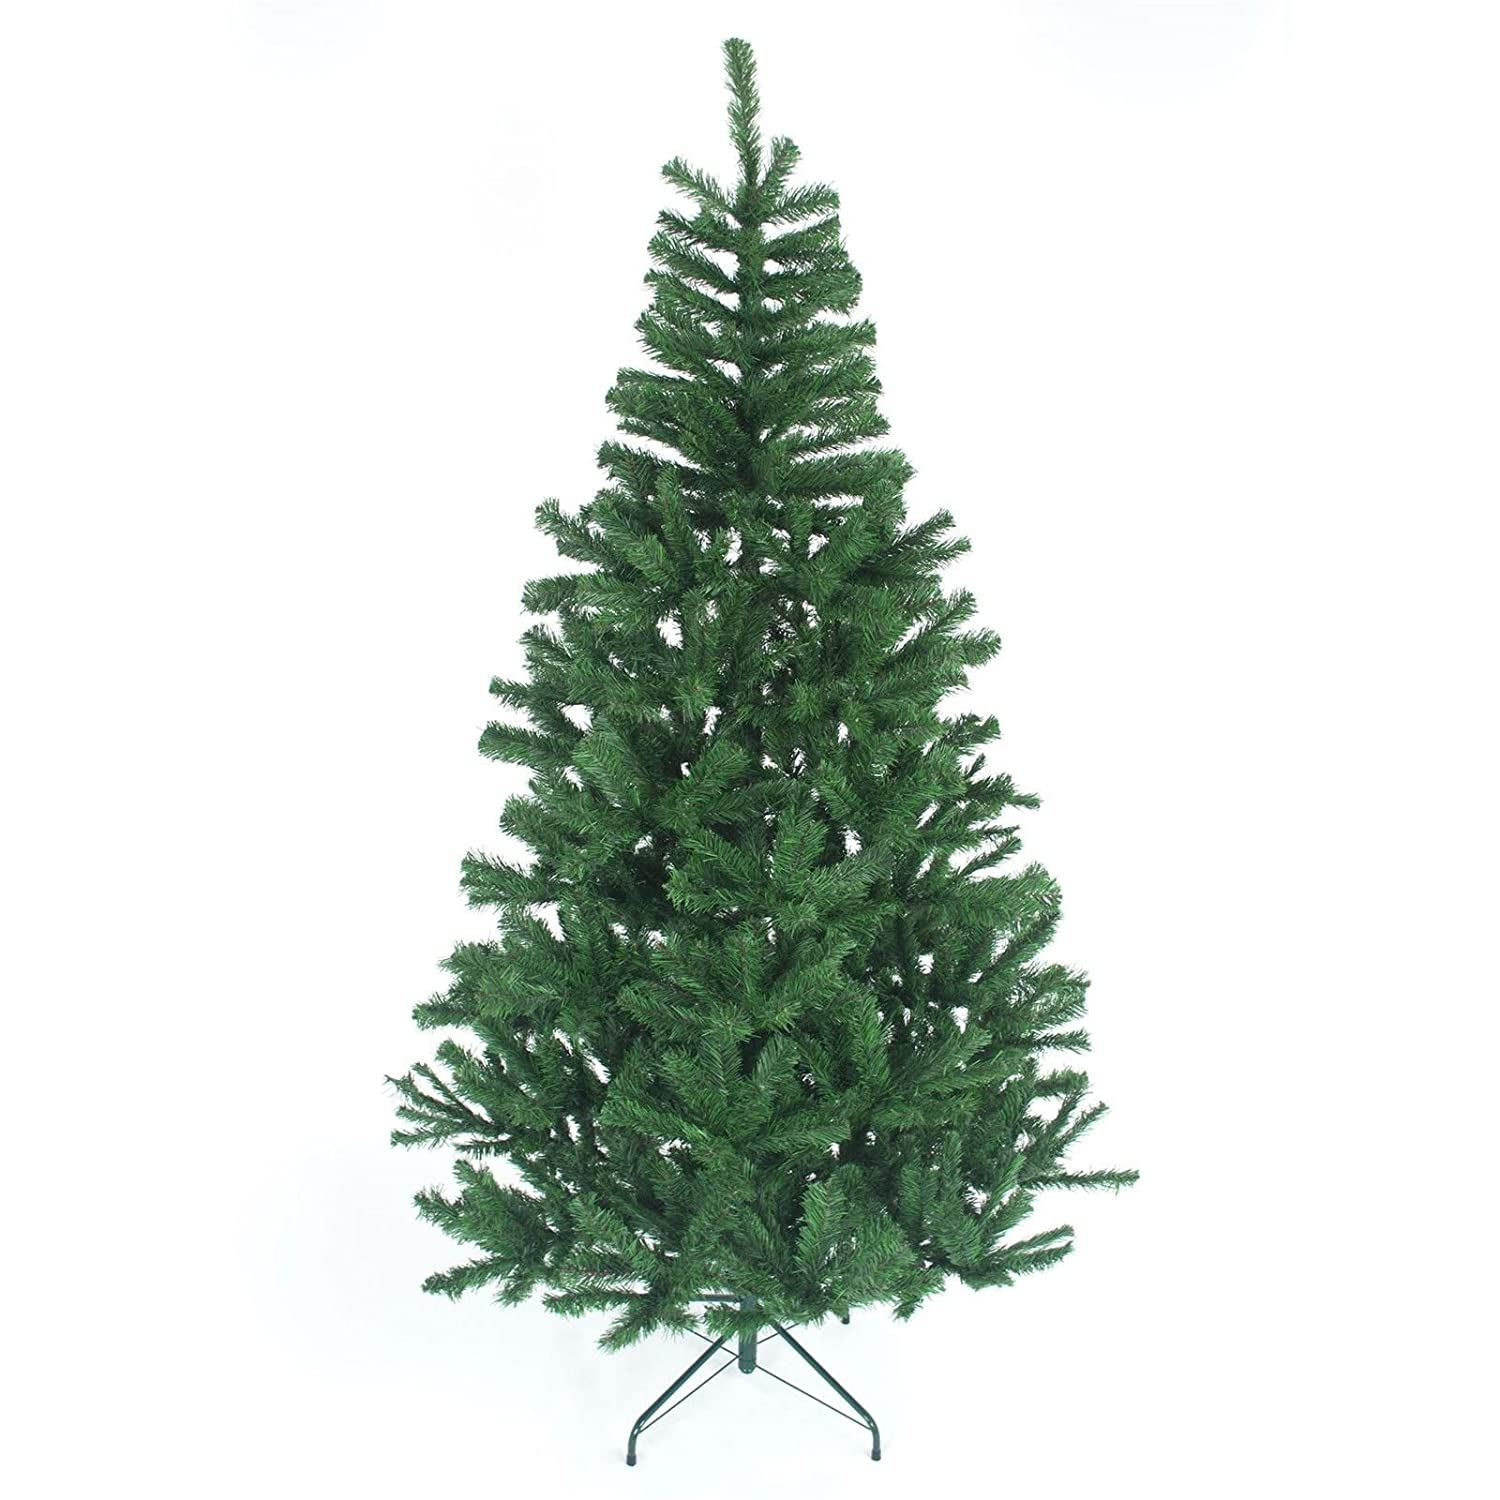 8ft-240cm Artificial Christmas Tree GREEN 1100 Imperial Pines with Metal Stand SHATCHI 3536-8FT